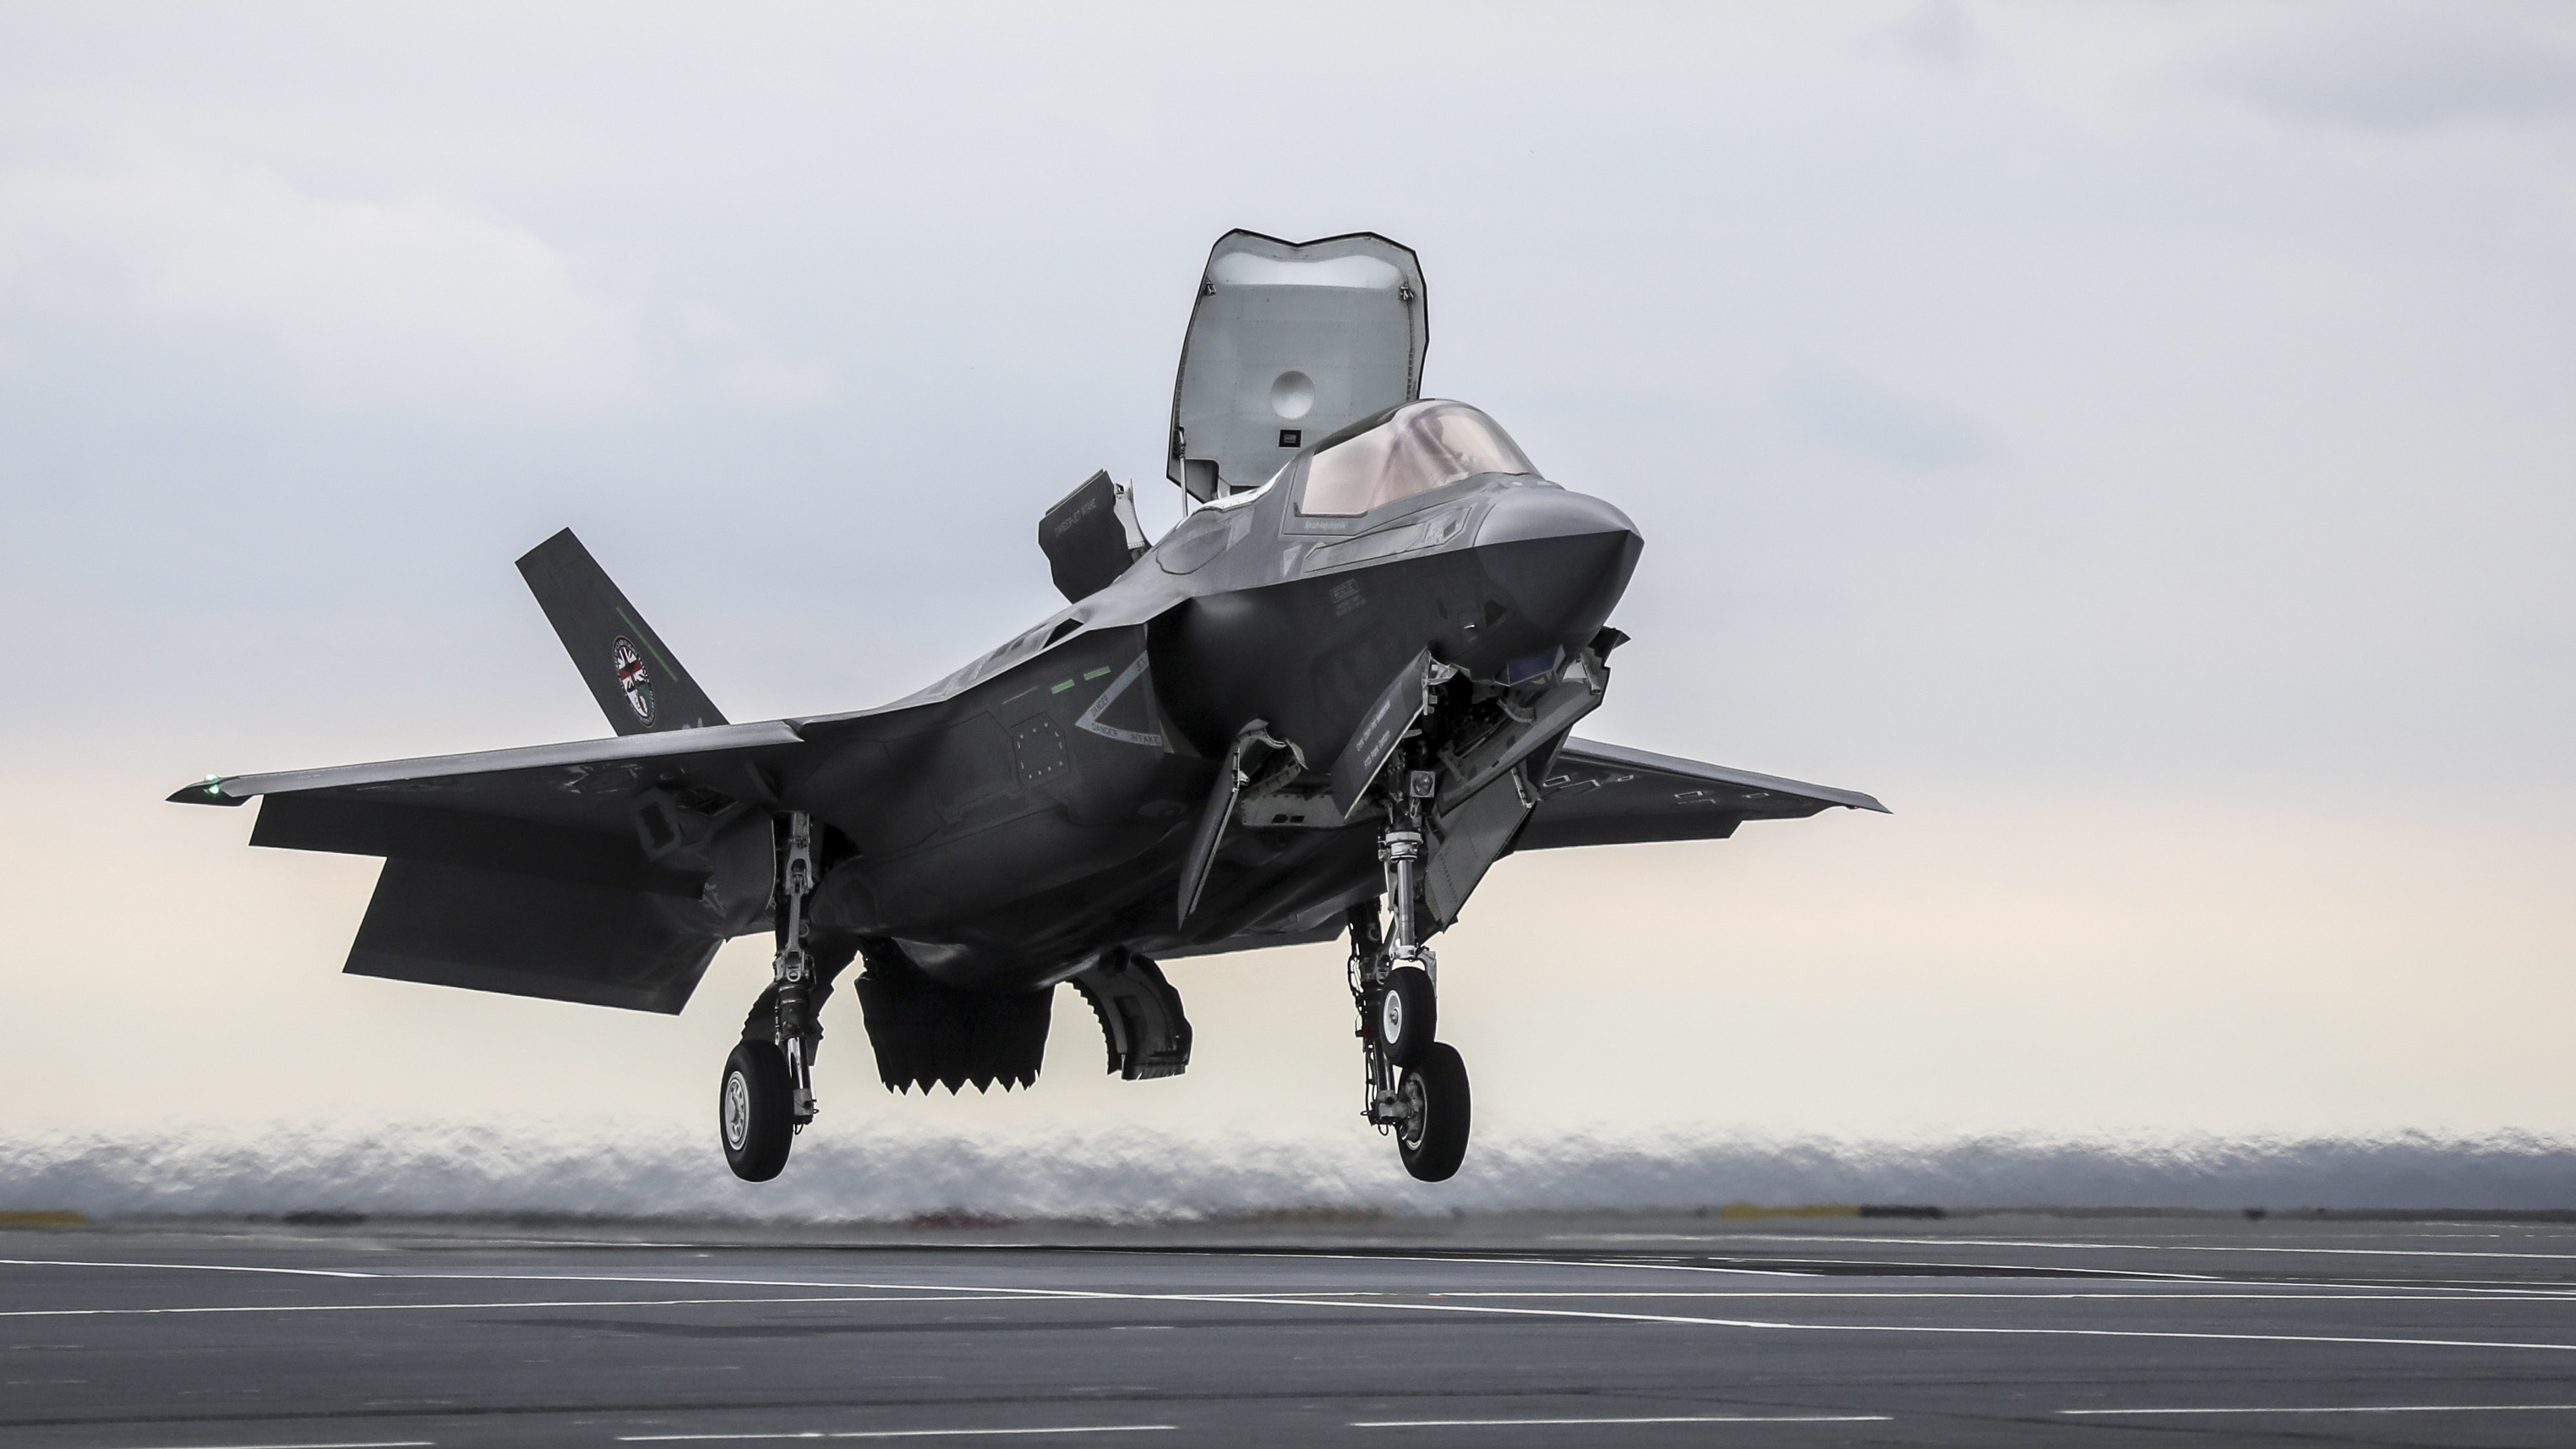 The first ever Shipborne Rolling Vertical Landing (SRVL) has been carried out with an F-35B Lightning II joint strike fighter jet conducting trials onboard the new British aircraft carrier, HMS Queen Elizabeth. The U.K. is the only nation currently planning to use the maneuver, which will allow jets to land onboard with heavier loads, meaning they wonÕt need to jettison expensive fuel and weapons before landing. (Courtesy photo by Royal Navy)